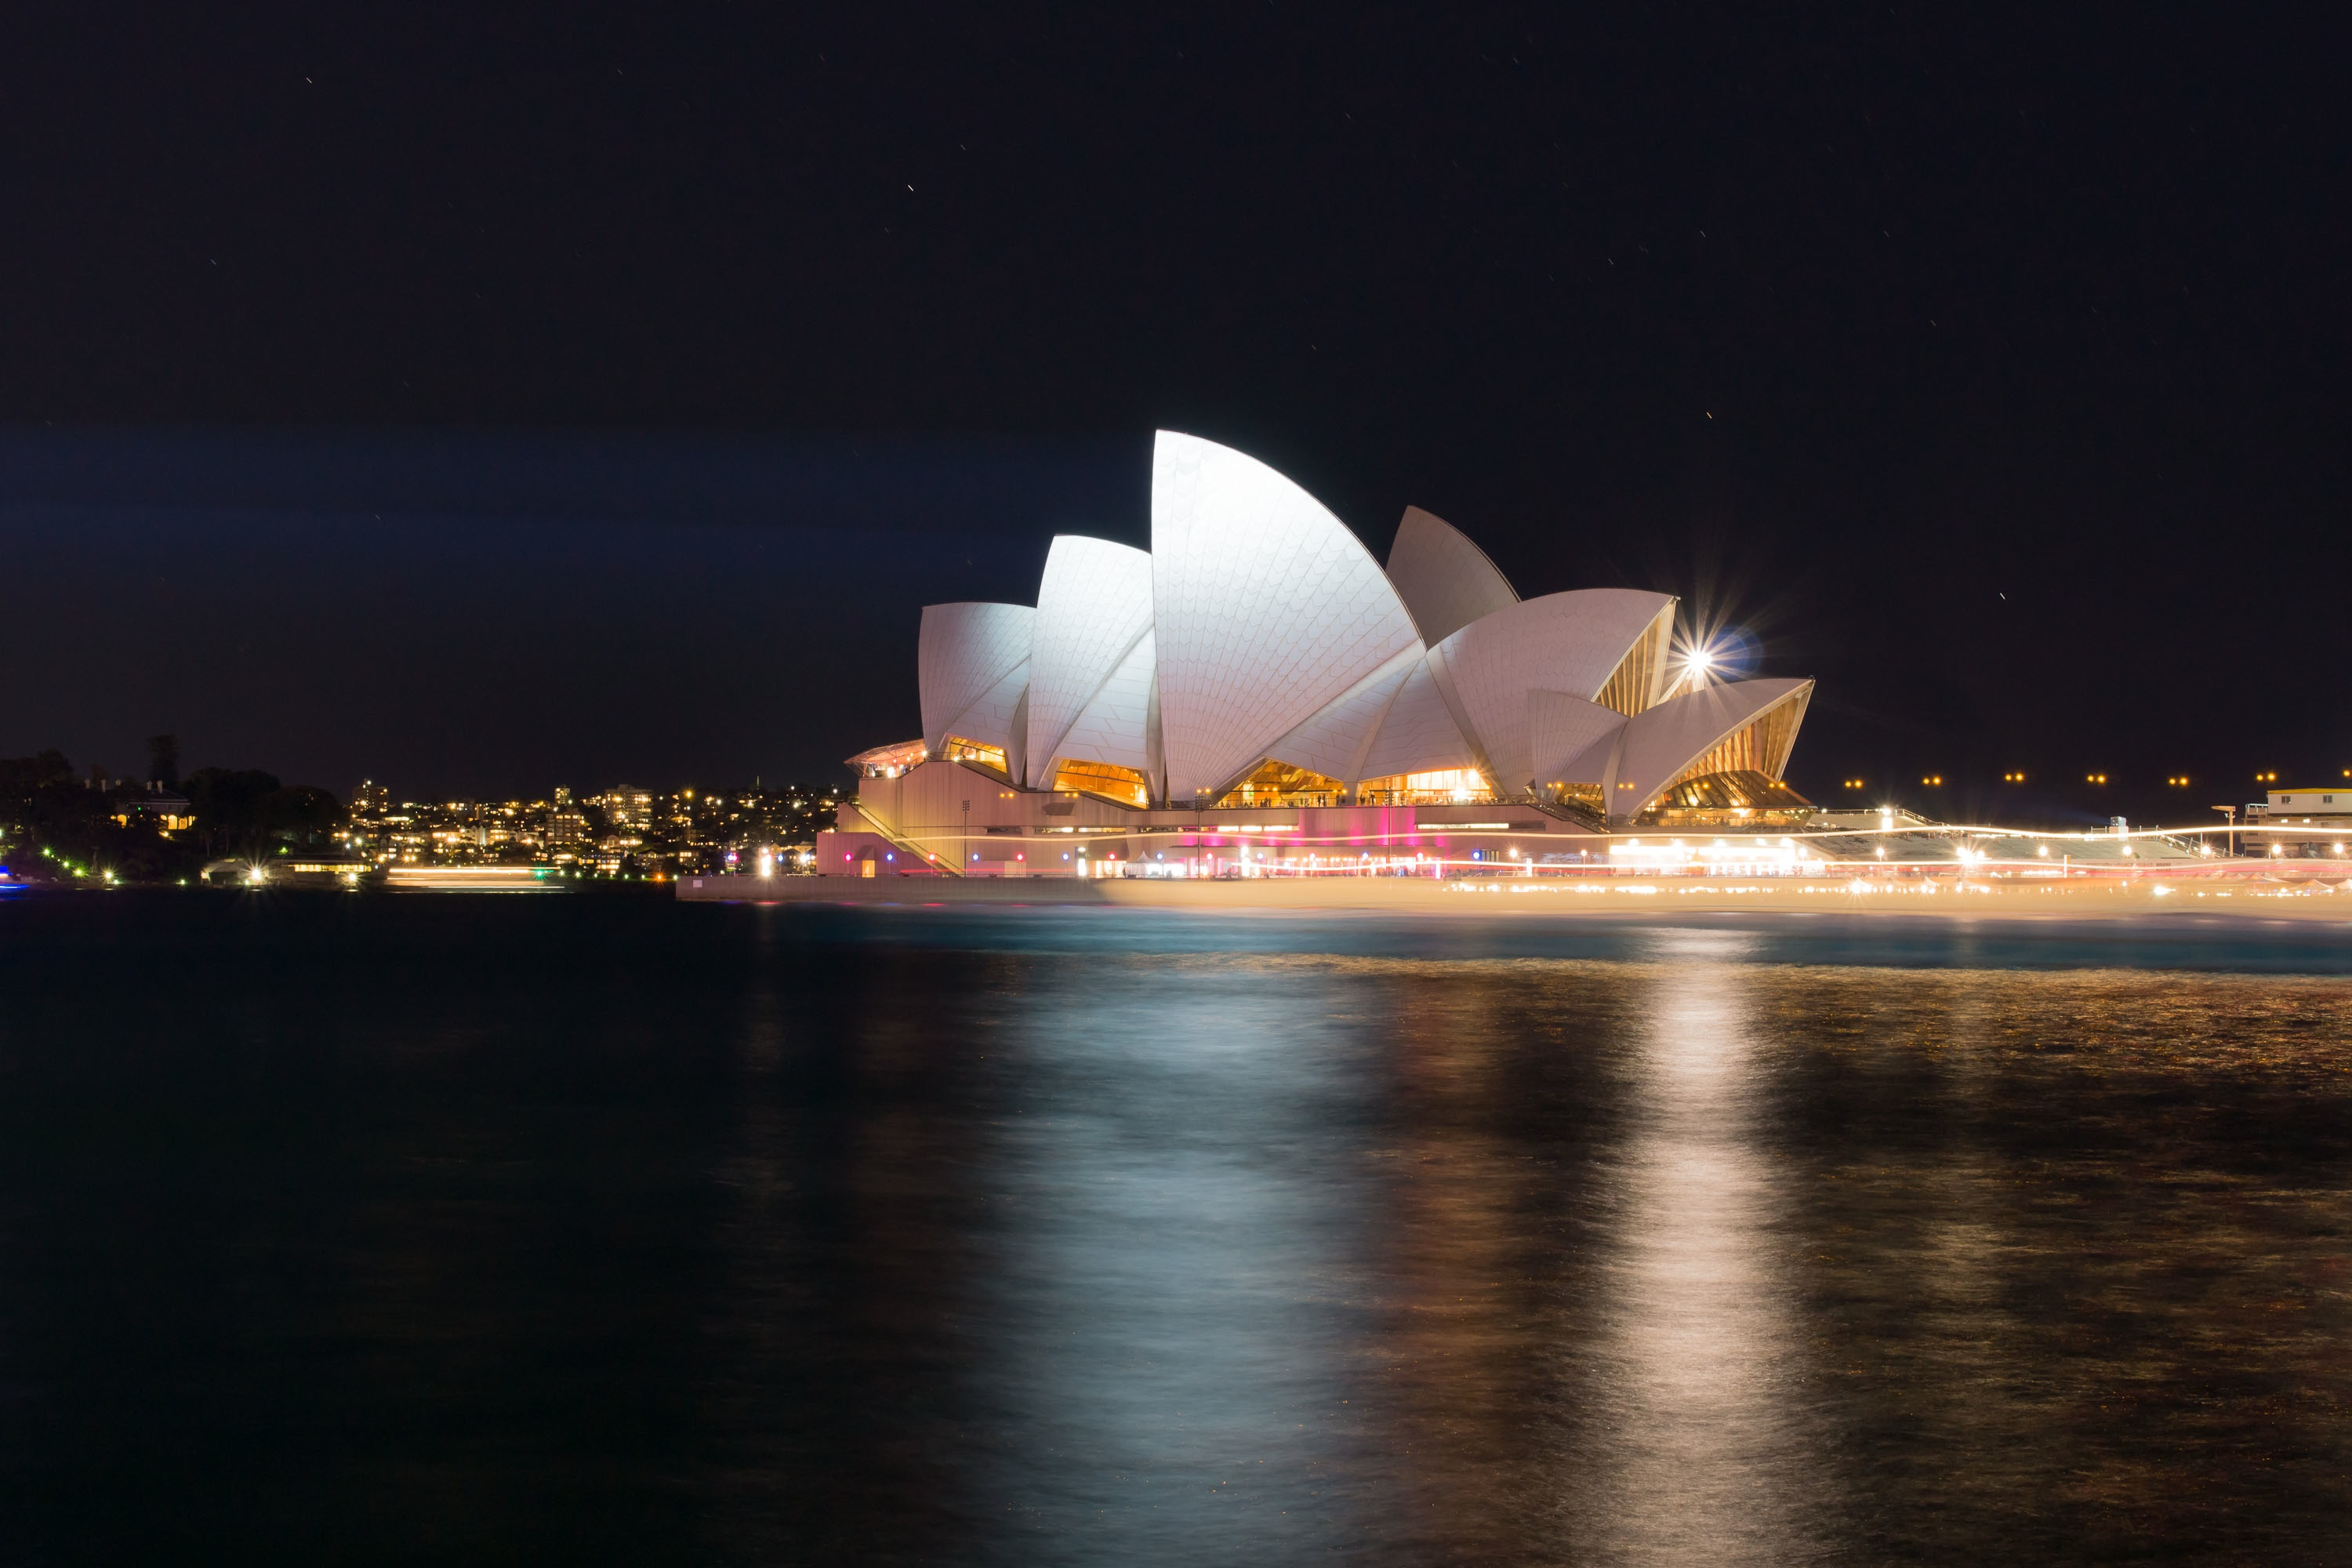 sydney opera house Find great deals on ebay for sydney opera house in 1970 to present day three-dimensional jigsaw puzzles shop with confidence.